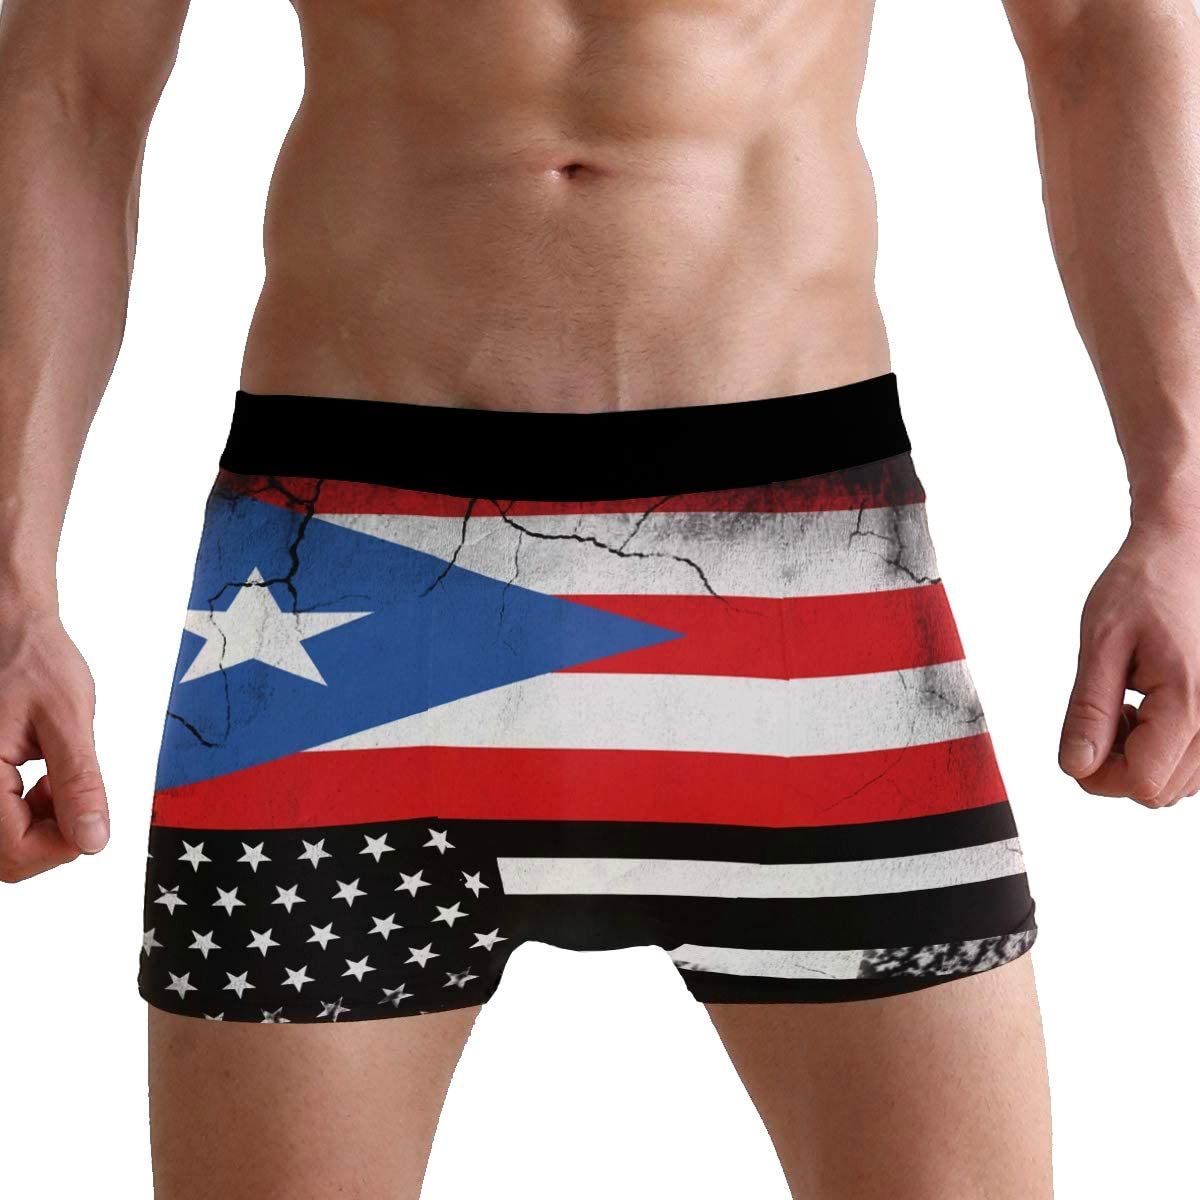 X-Large,as photo Mens Puerto Rico Skull Boxer Briefs Underwears Light Weight Casual Breathable Soft Cotton